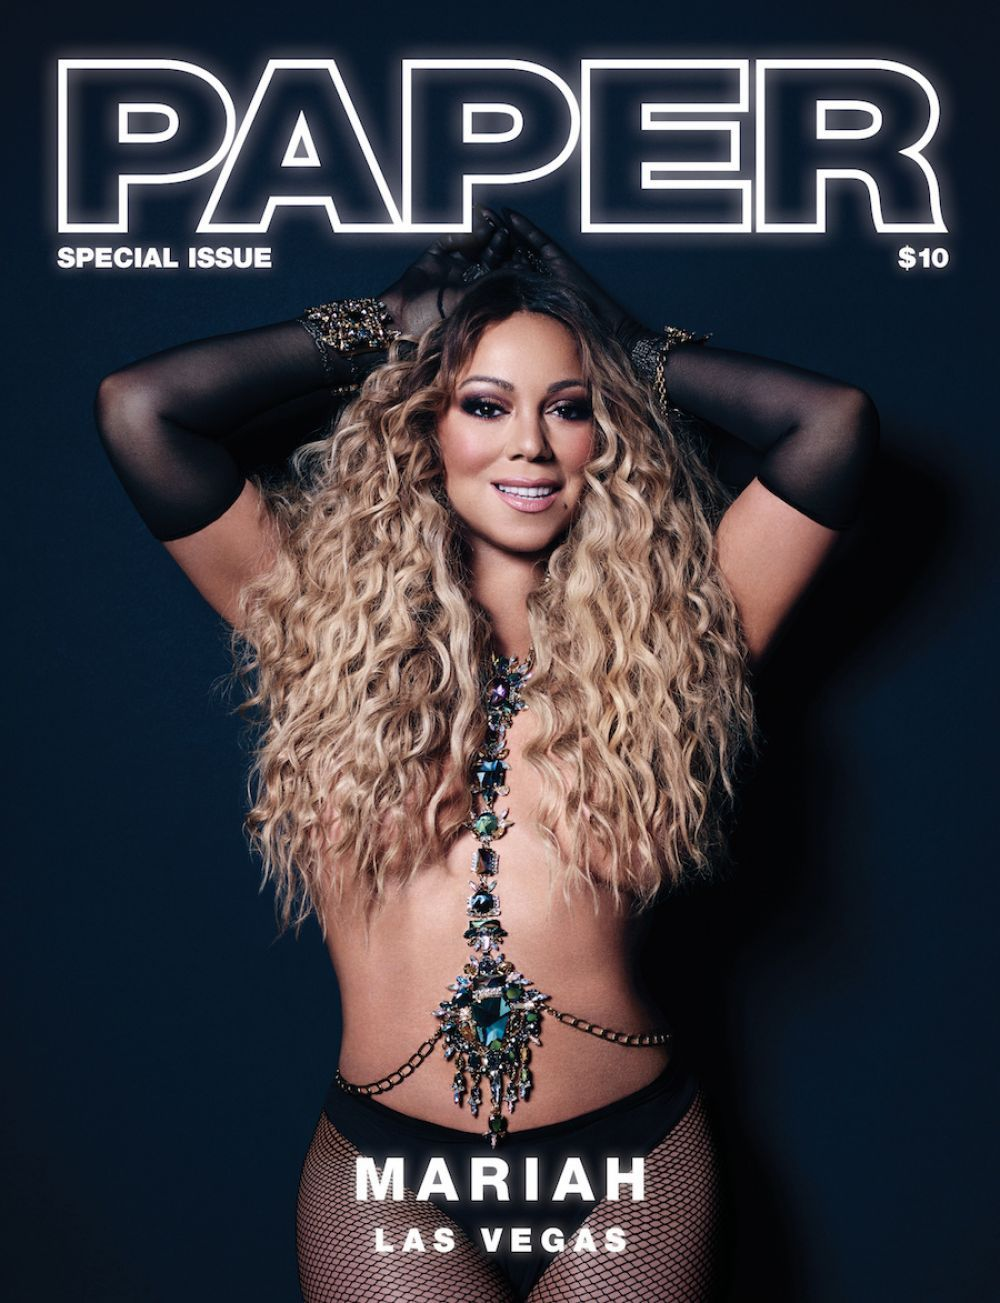 Mariah Carey on the cover of Paper Magazine